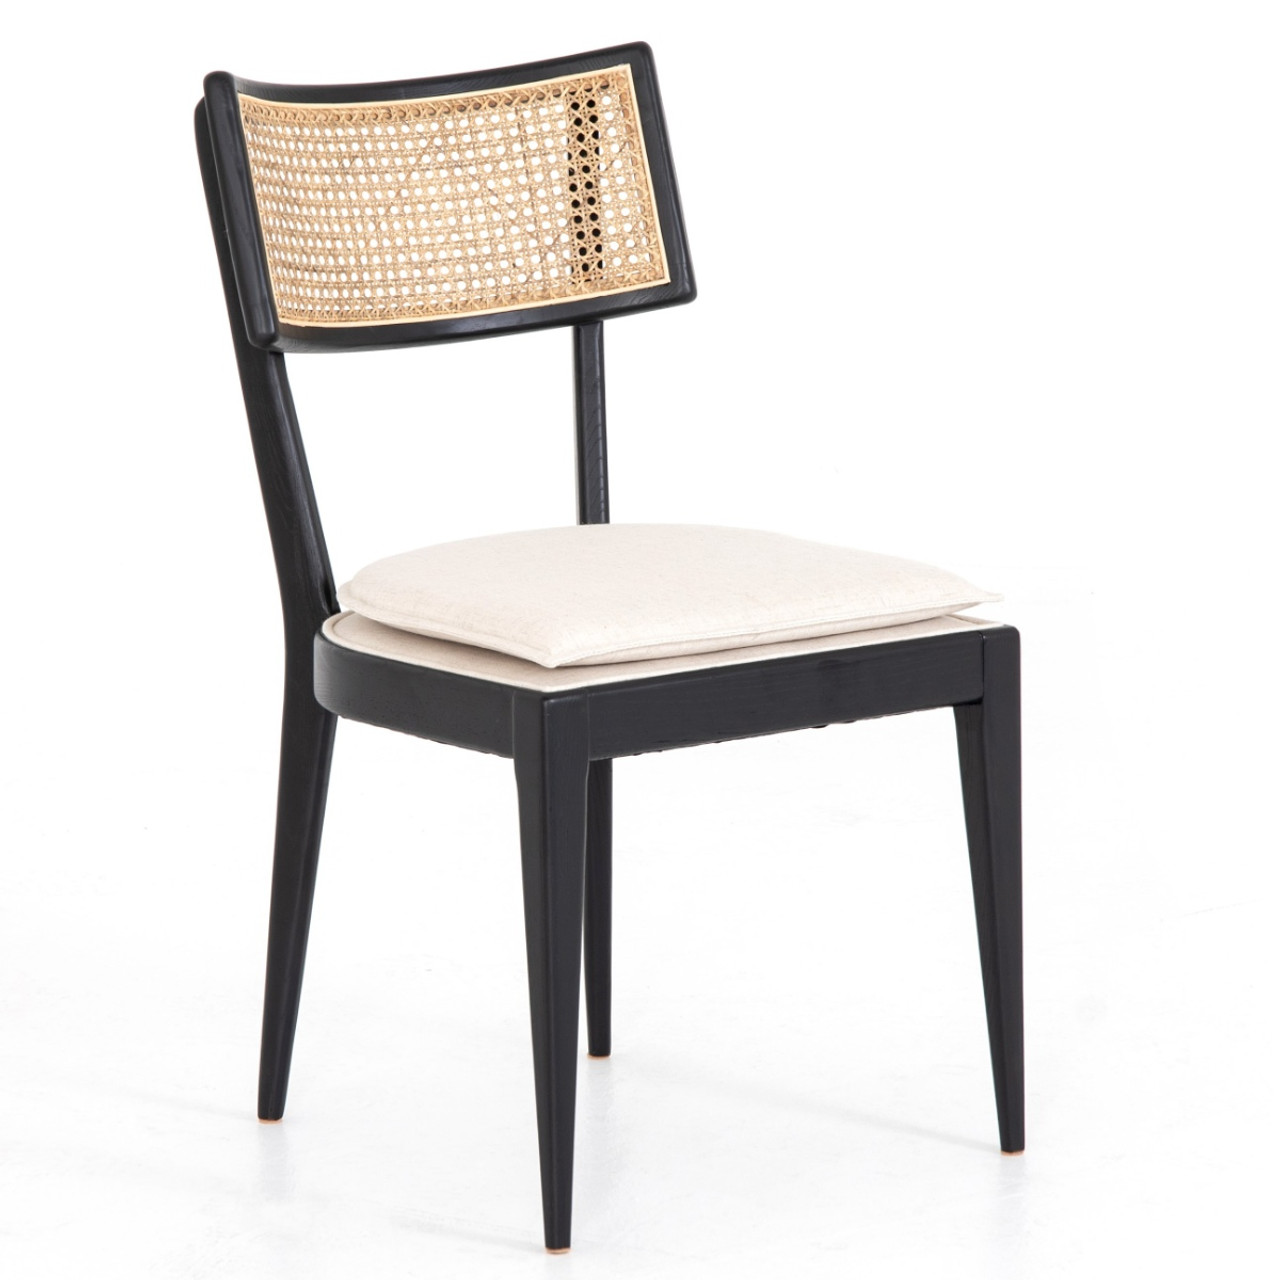 Superb Britt Woven Cane Back Dining Chair Ncnpc Chair Design For Home Ncnpcorg